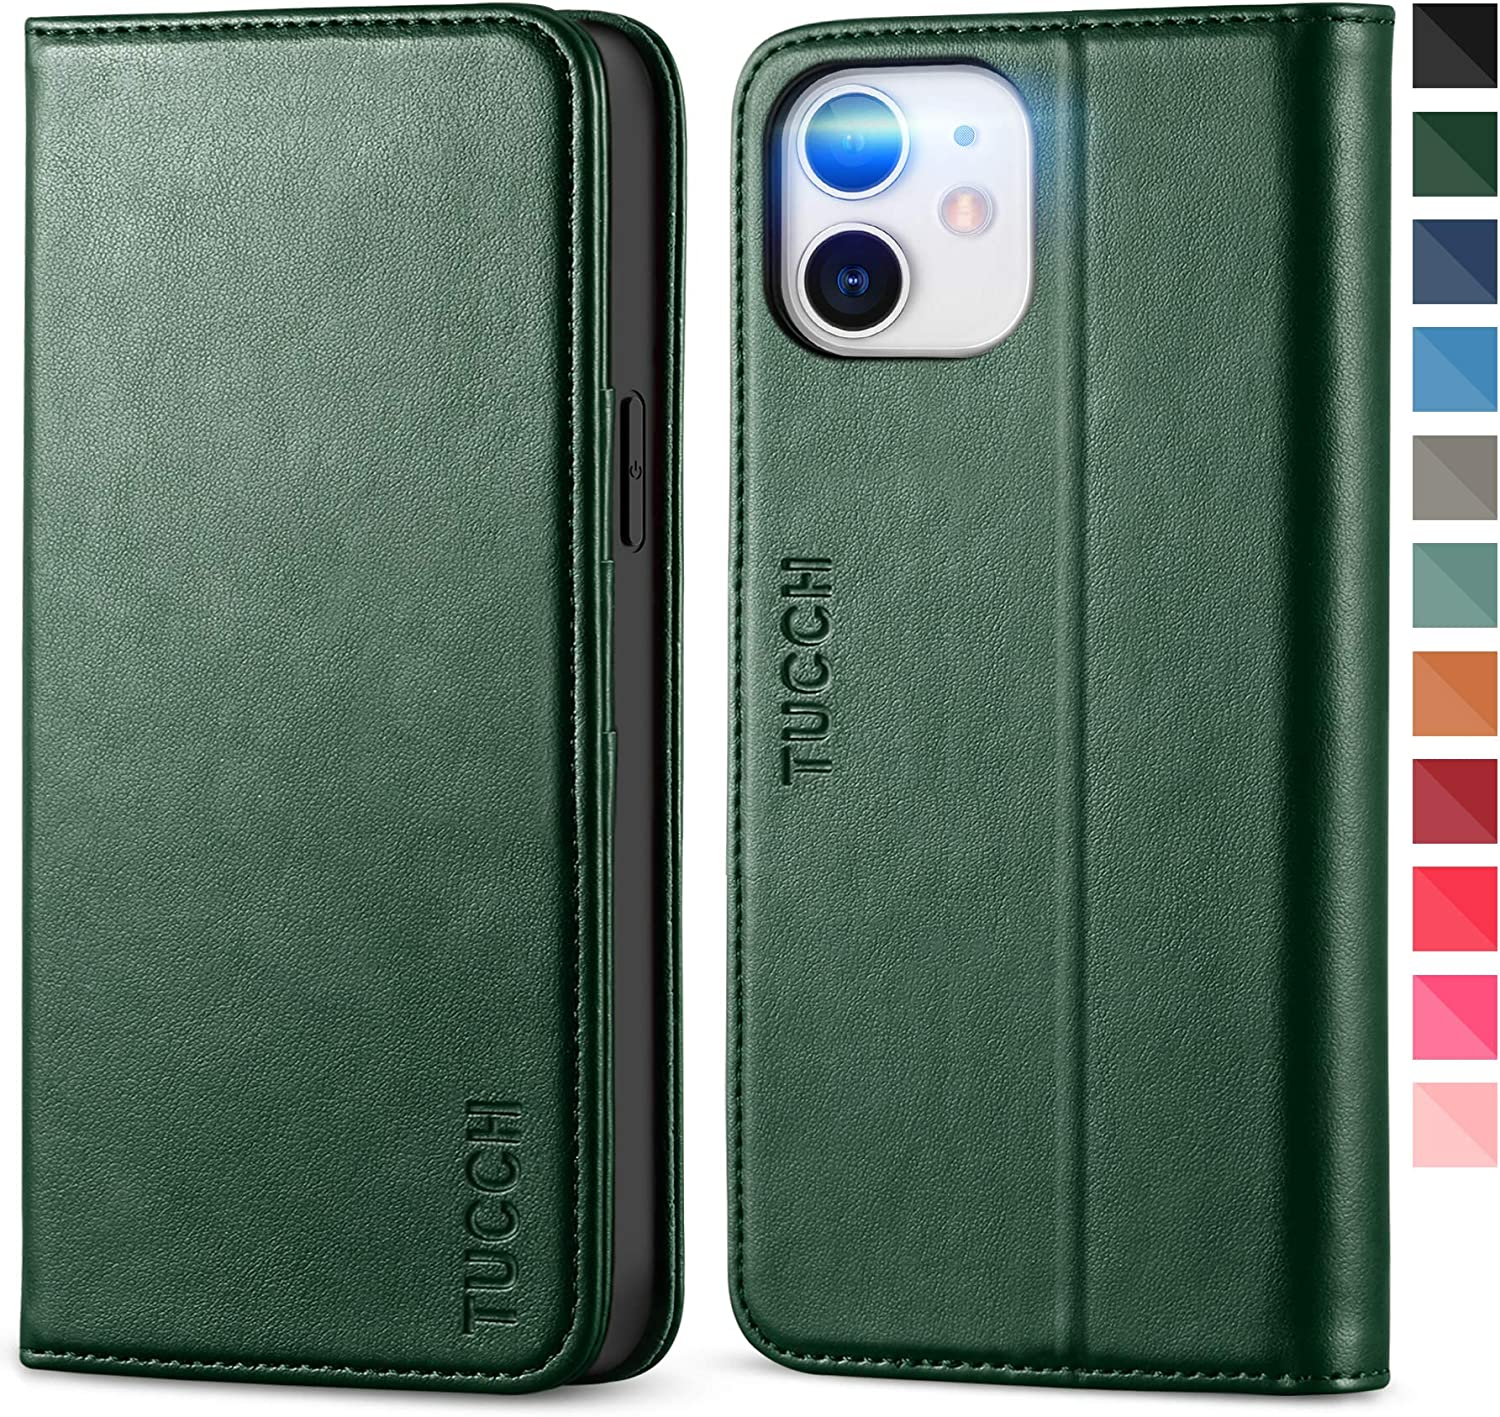 TUCCH Case for iPhone 12/iPhone 12 Pro 5G, PU Leather Folio Case Wallet with Card Slot, Kickstand Book Design [Shockproof TPU Interior Case] Compatible with iPhone 12 Pro/12 6.1-inch, Midnight Green